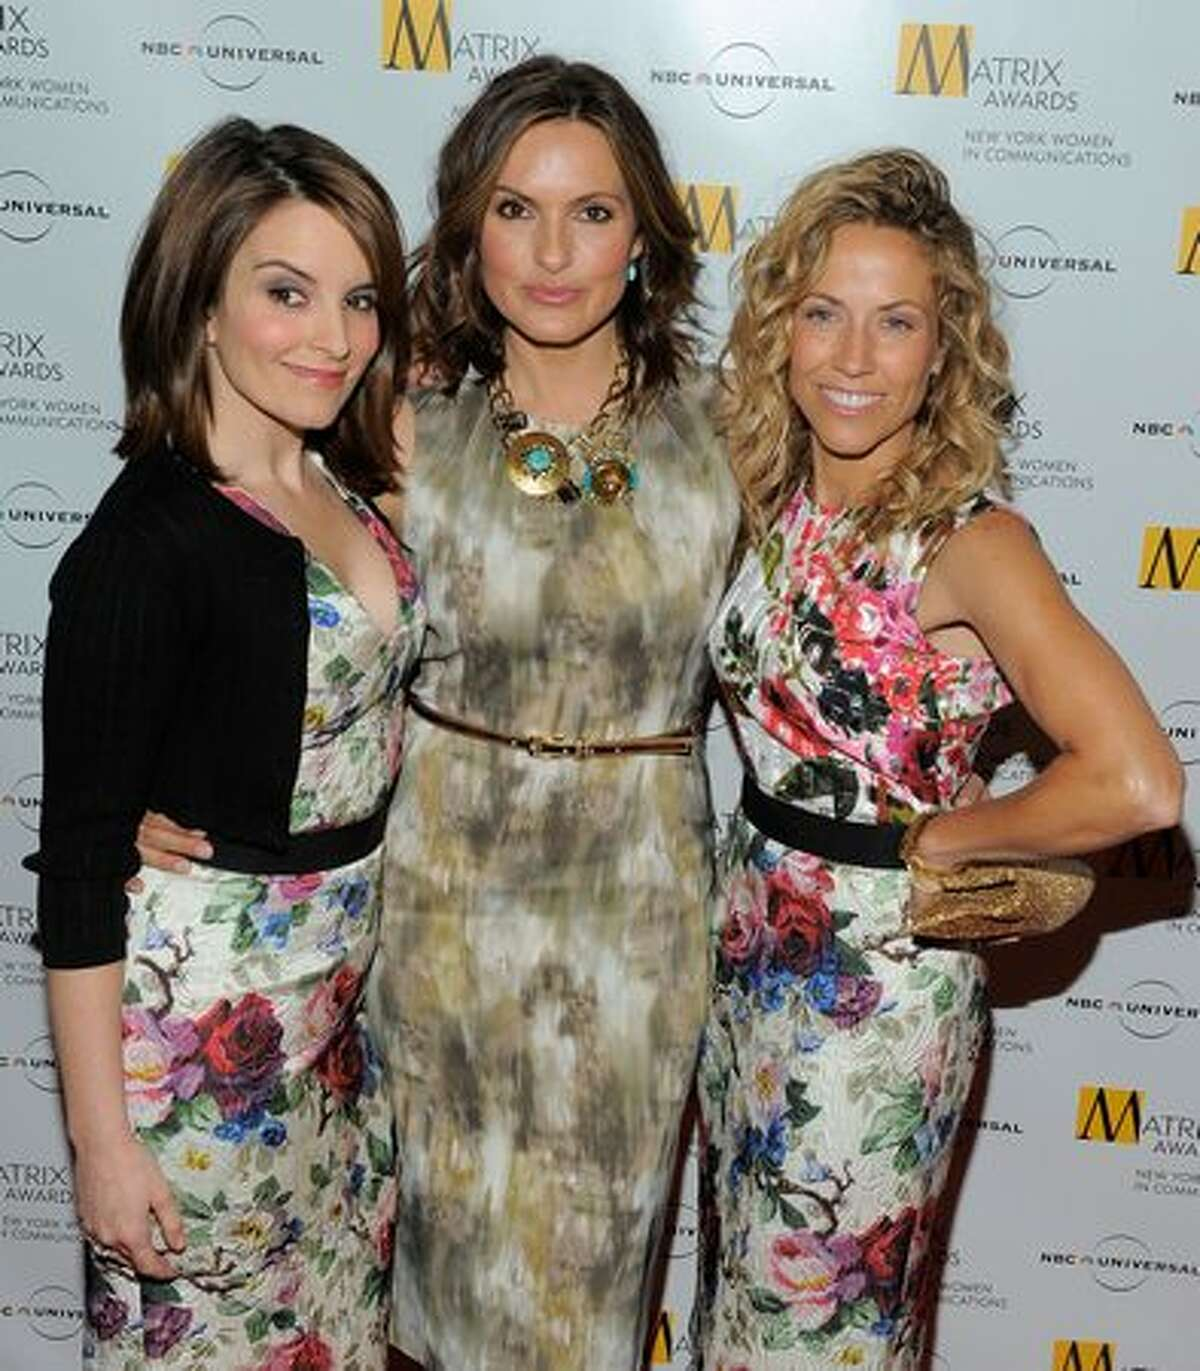 Comedian Tina Fey, actress Mariska Hargitay and singer Sheryl Crow pose for photos at the 2010 Matrix Awards presented by New York Women in Communications at The Waldorf Astoria in New York City.